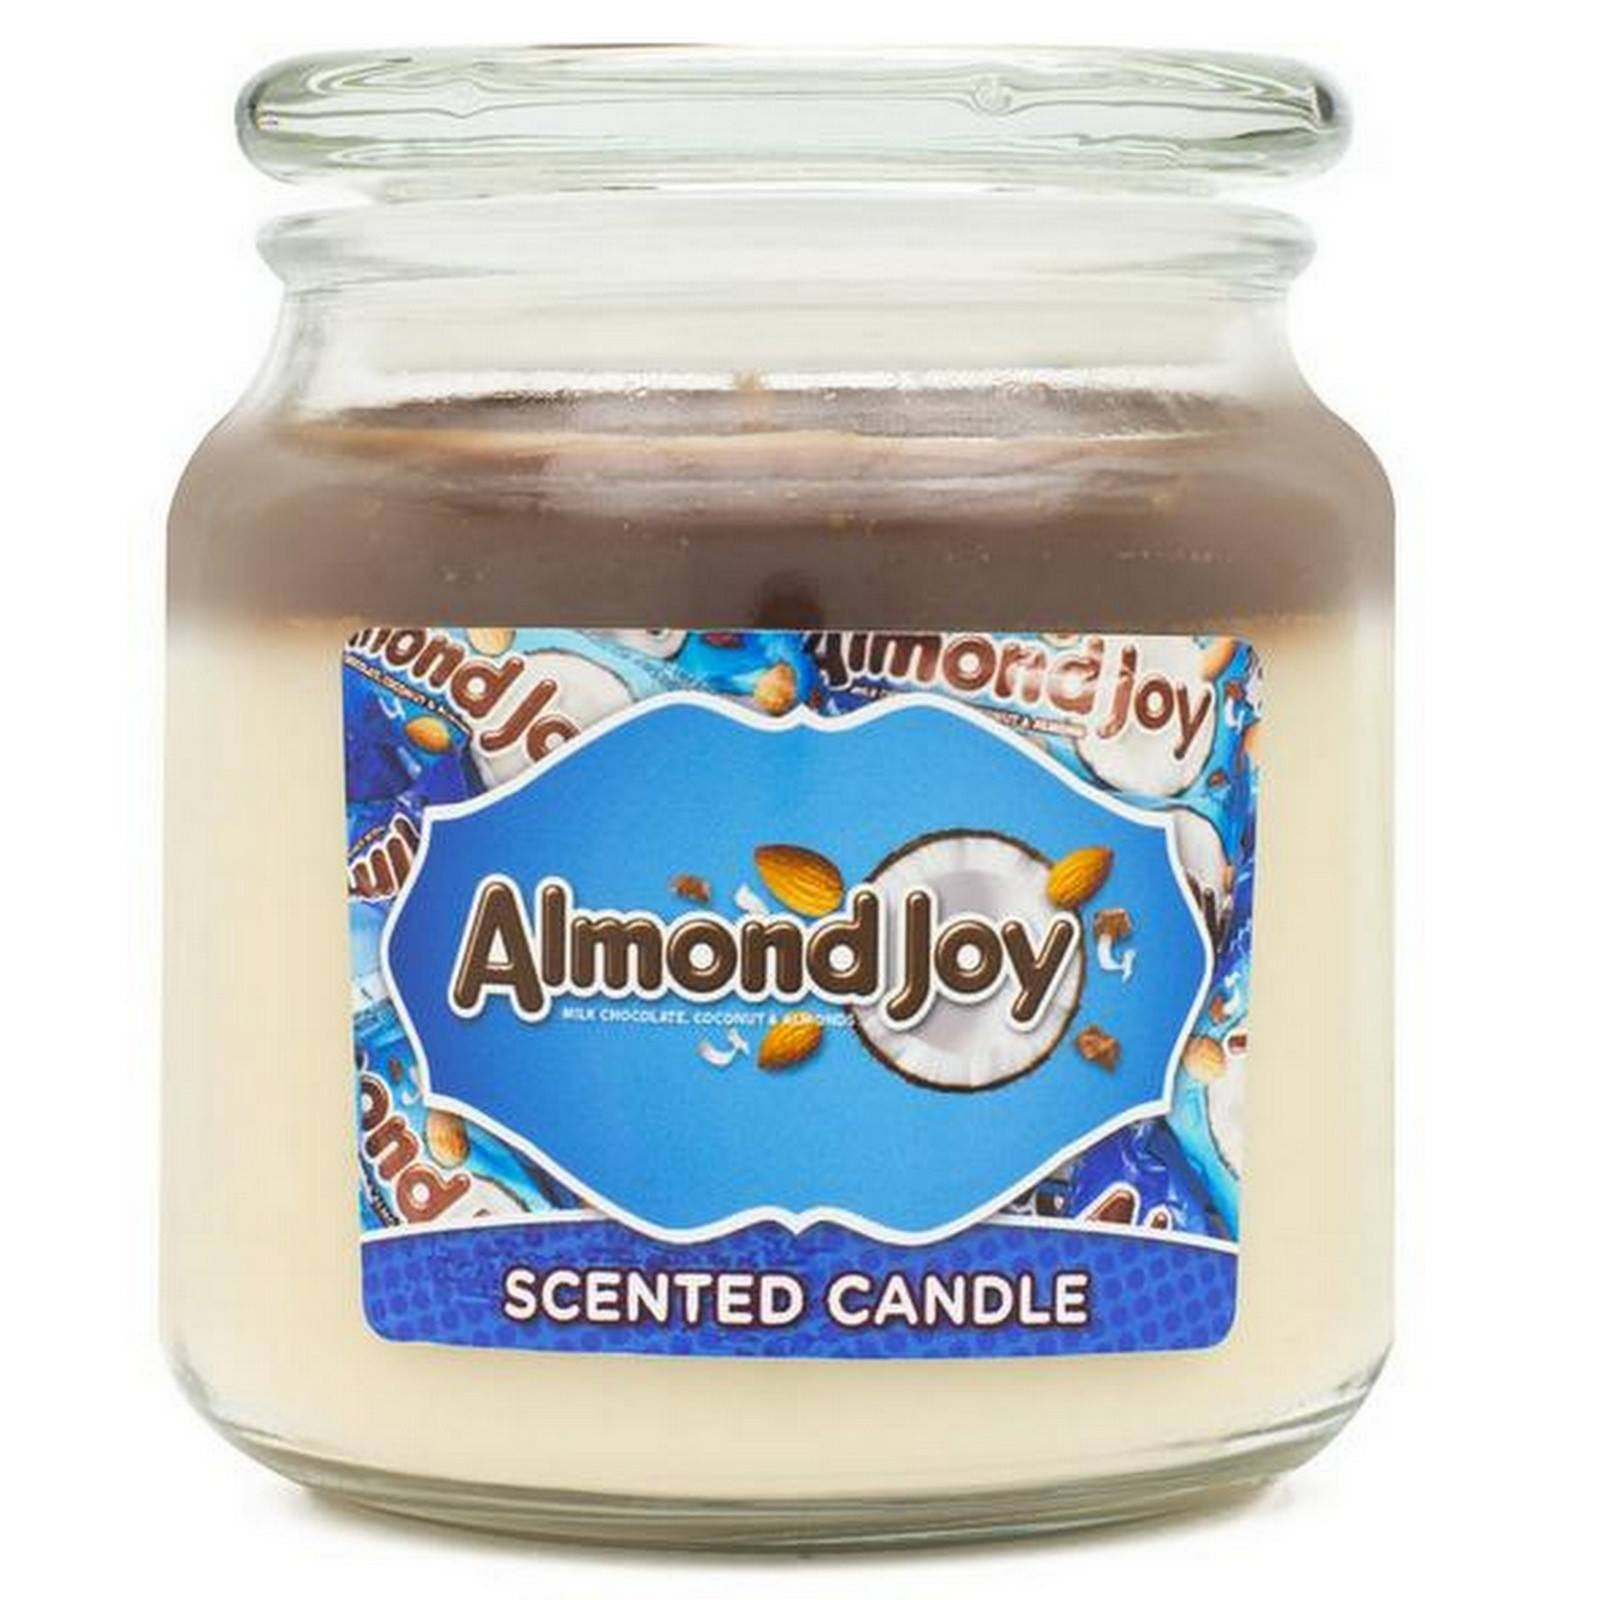 Hershey's Almond Joy Scented Wax Candle - Candlemart.com